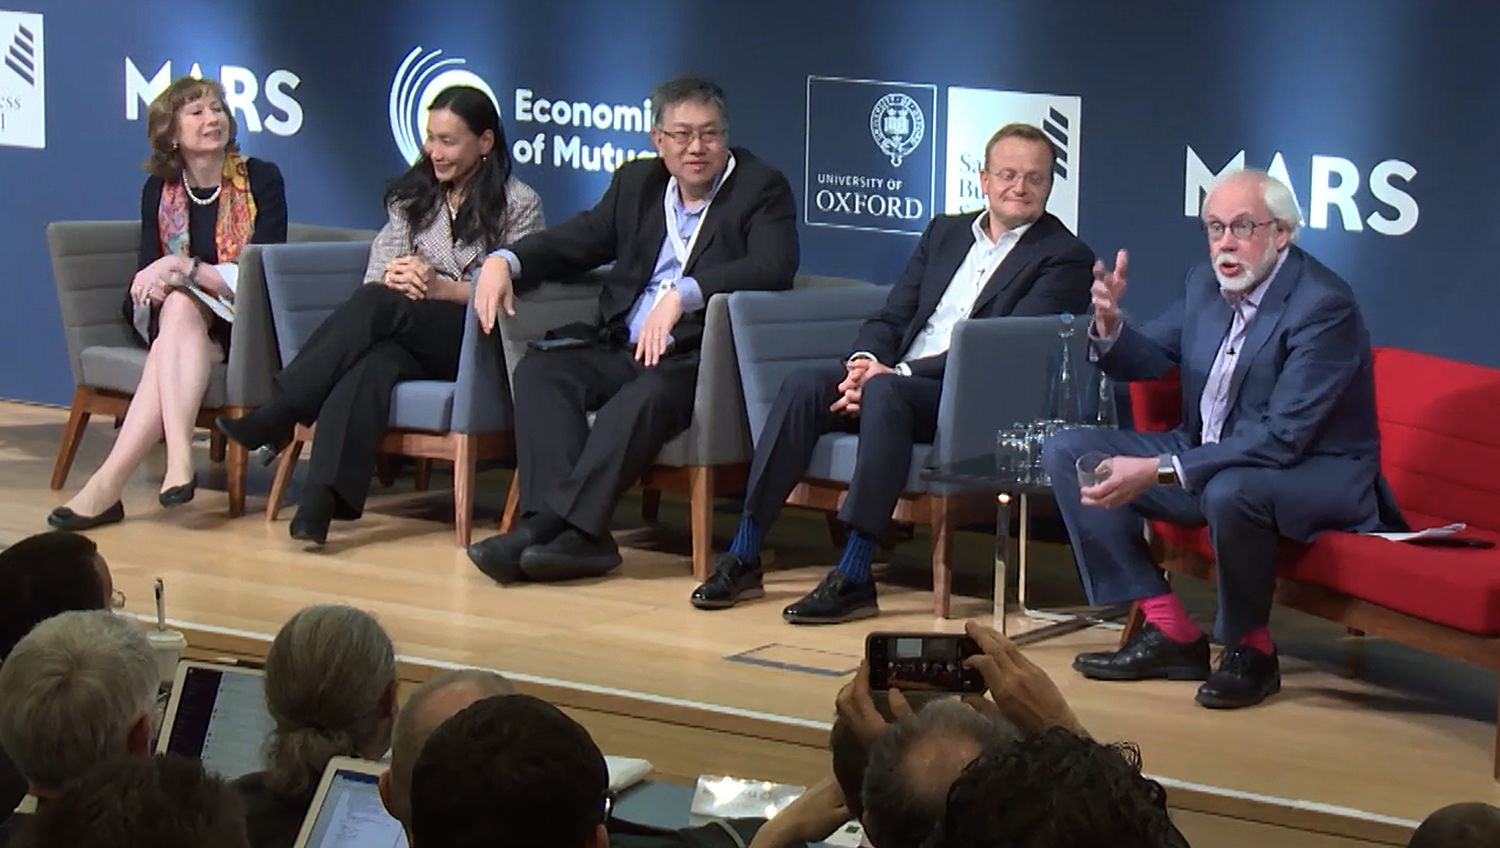 6. Finance and Purpose in Business - Timothy Wong, Jacek Szarzynski, Neo Gim Huay, Veronica Poole and Robert Eccles